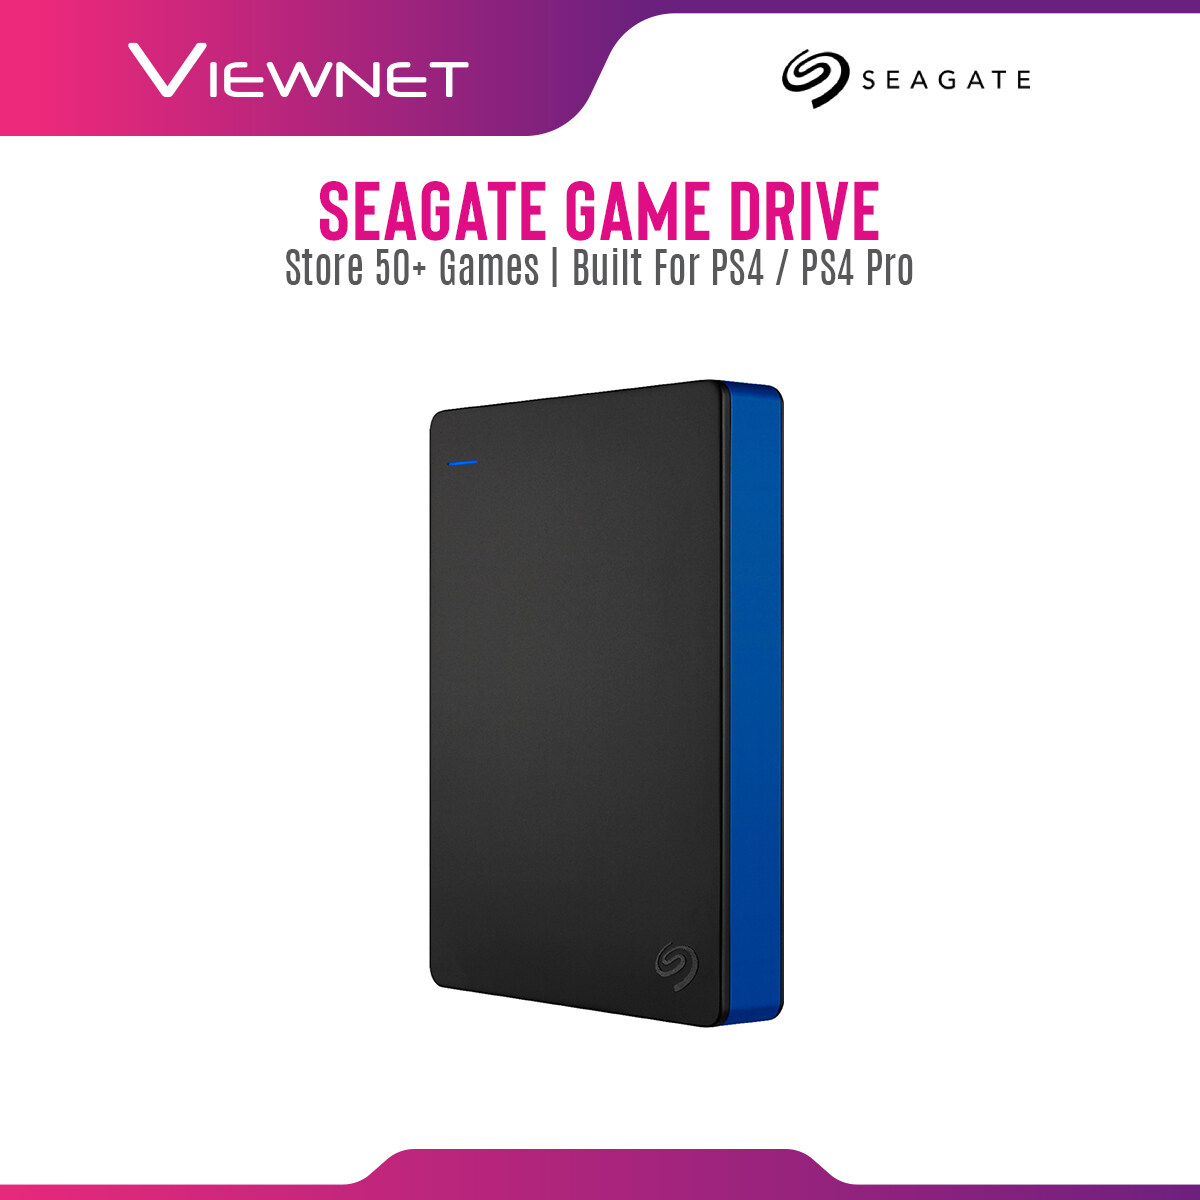 Seagate Game Drive 2TB / 4TB For PS4 / PS4 Pro with USB 3.0 Connection, Quick Setup, Store Up To 50+ Game